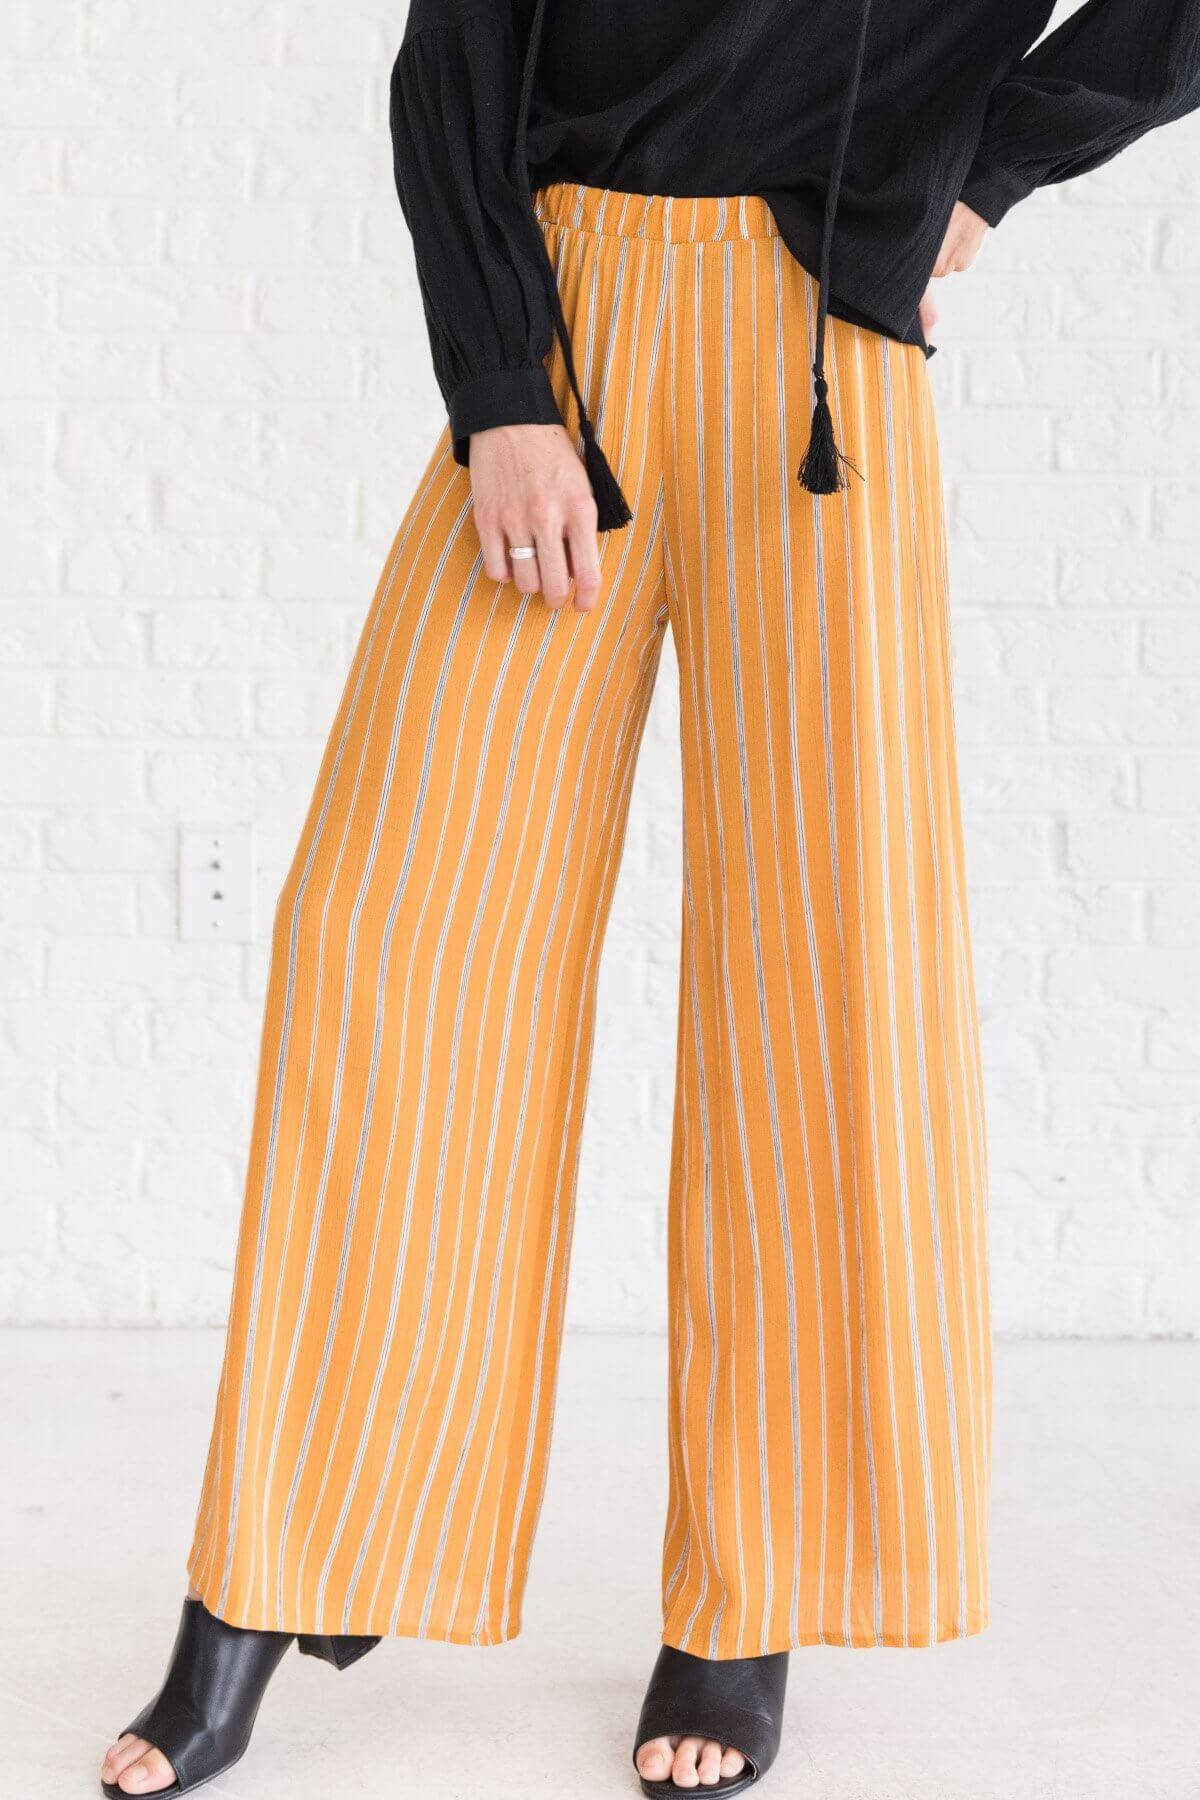 Mustard Yellow Striped Flare Palazzo Pants